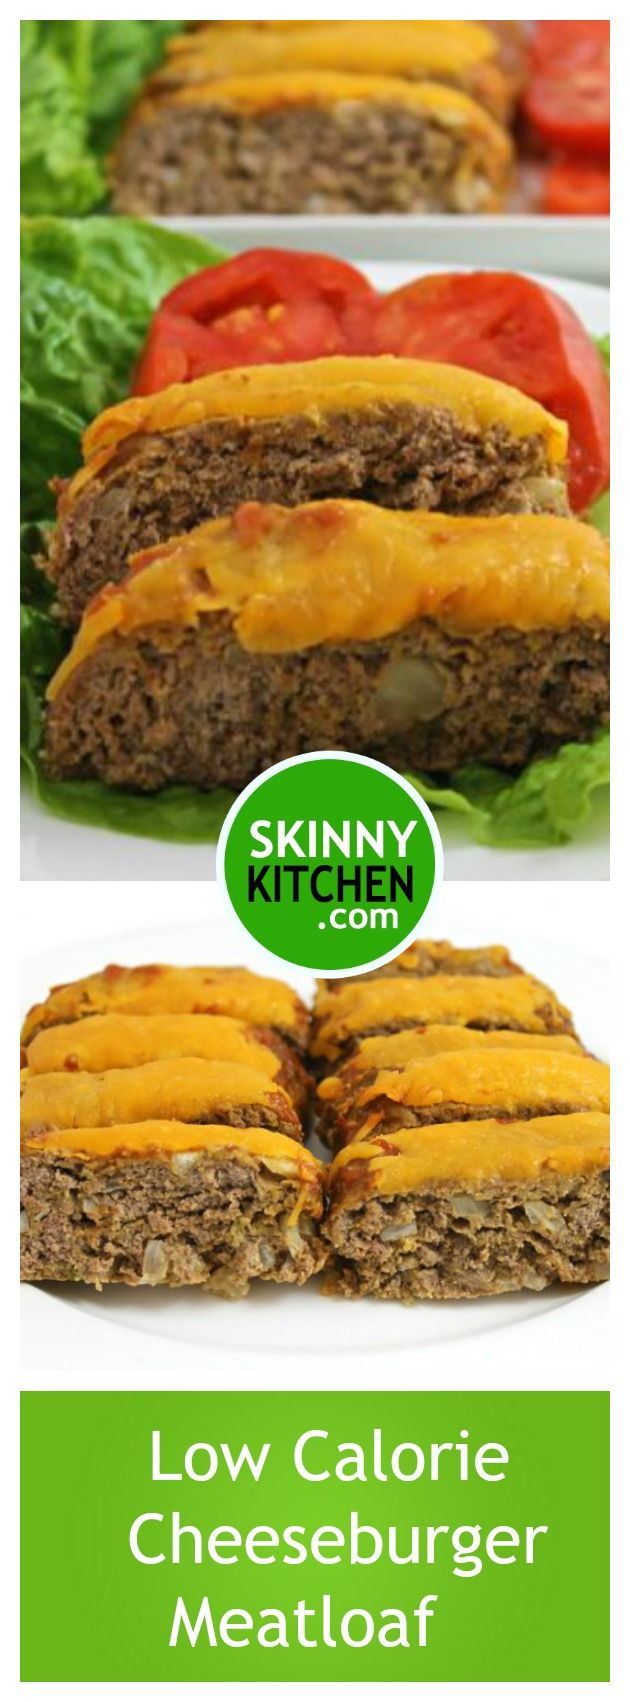 Low Calorie Cheeseburger Meatloaf. It's extremely delicious and perfect for any night. Each 2 slice serving, 229 cal, 8g fat & 5 Freestyle SmartPoints. #meatloaf #freestyle #cheeseburger https://www.skinnykitchen.com/recipes/low-calorie-cheeseburger-meatloaf/